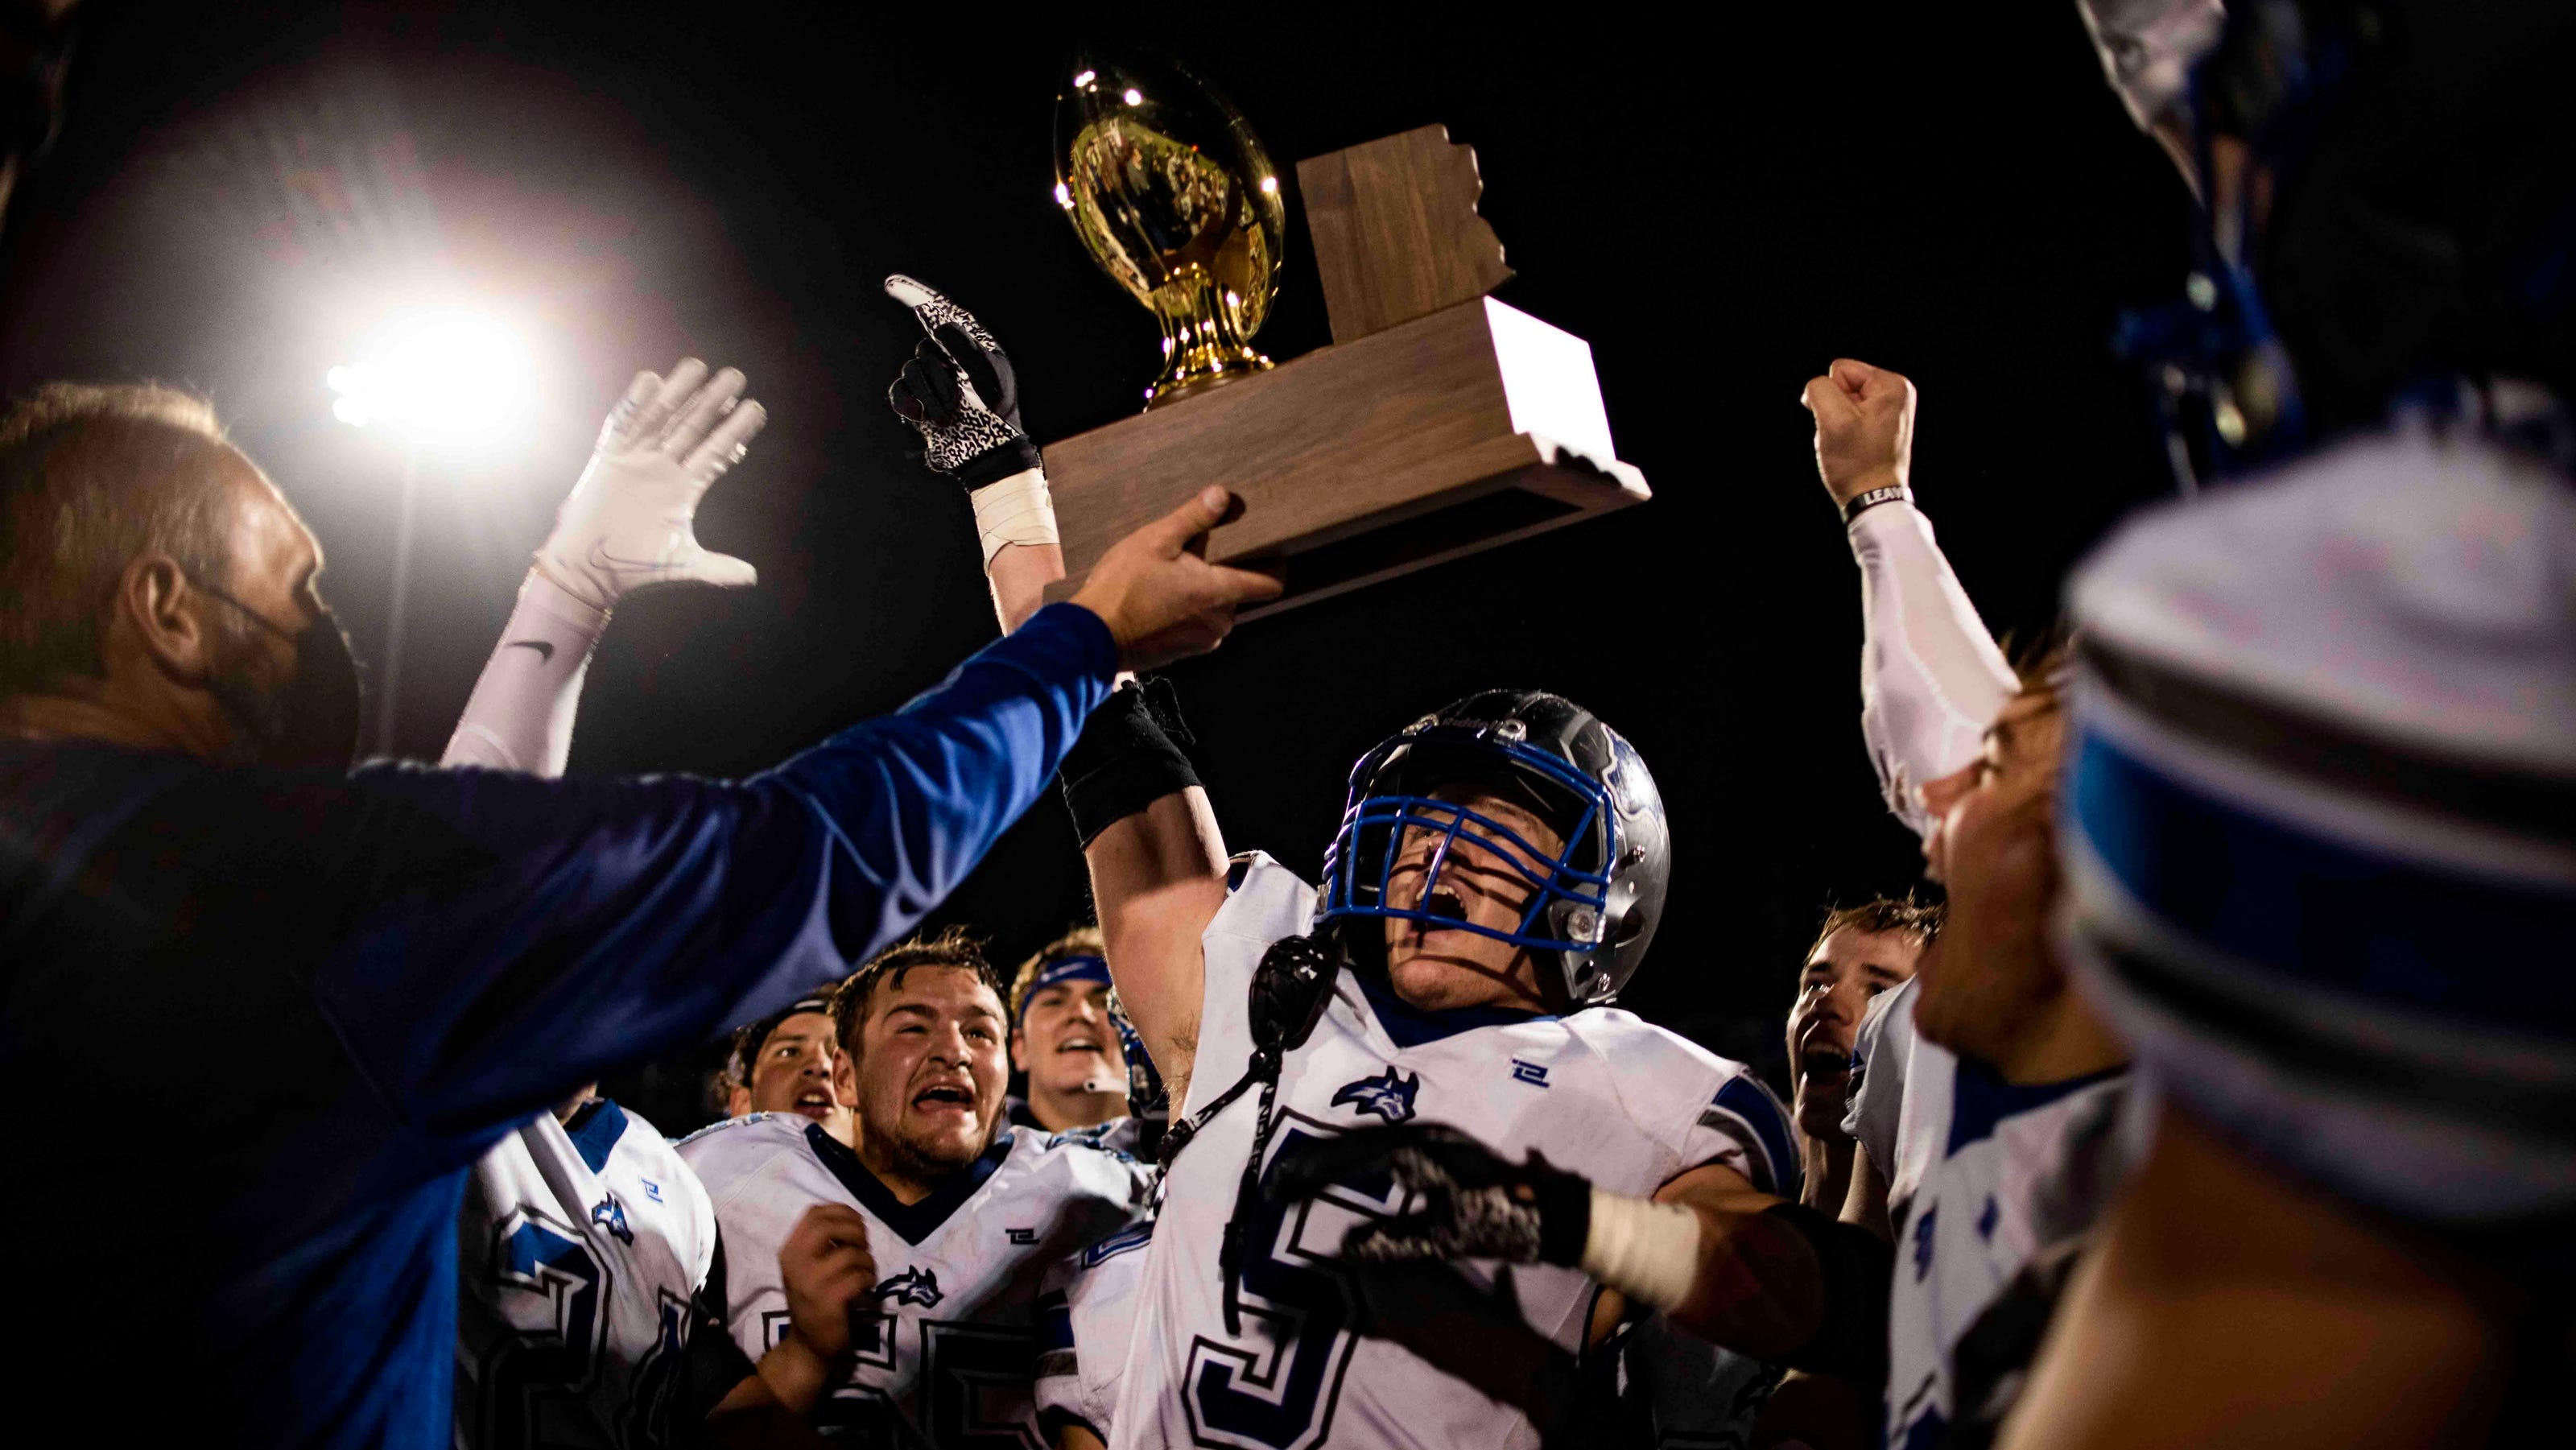 Snowflake routs Yuma Catholic to win its first 3A state championship since 1993